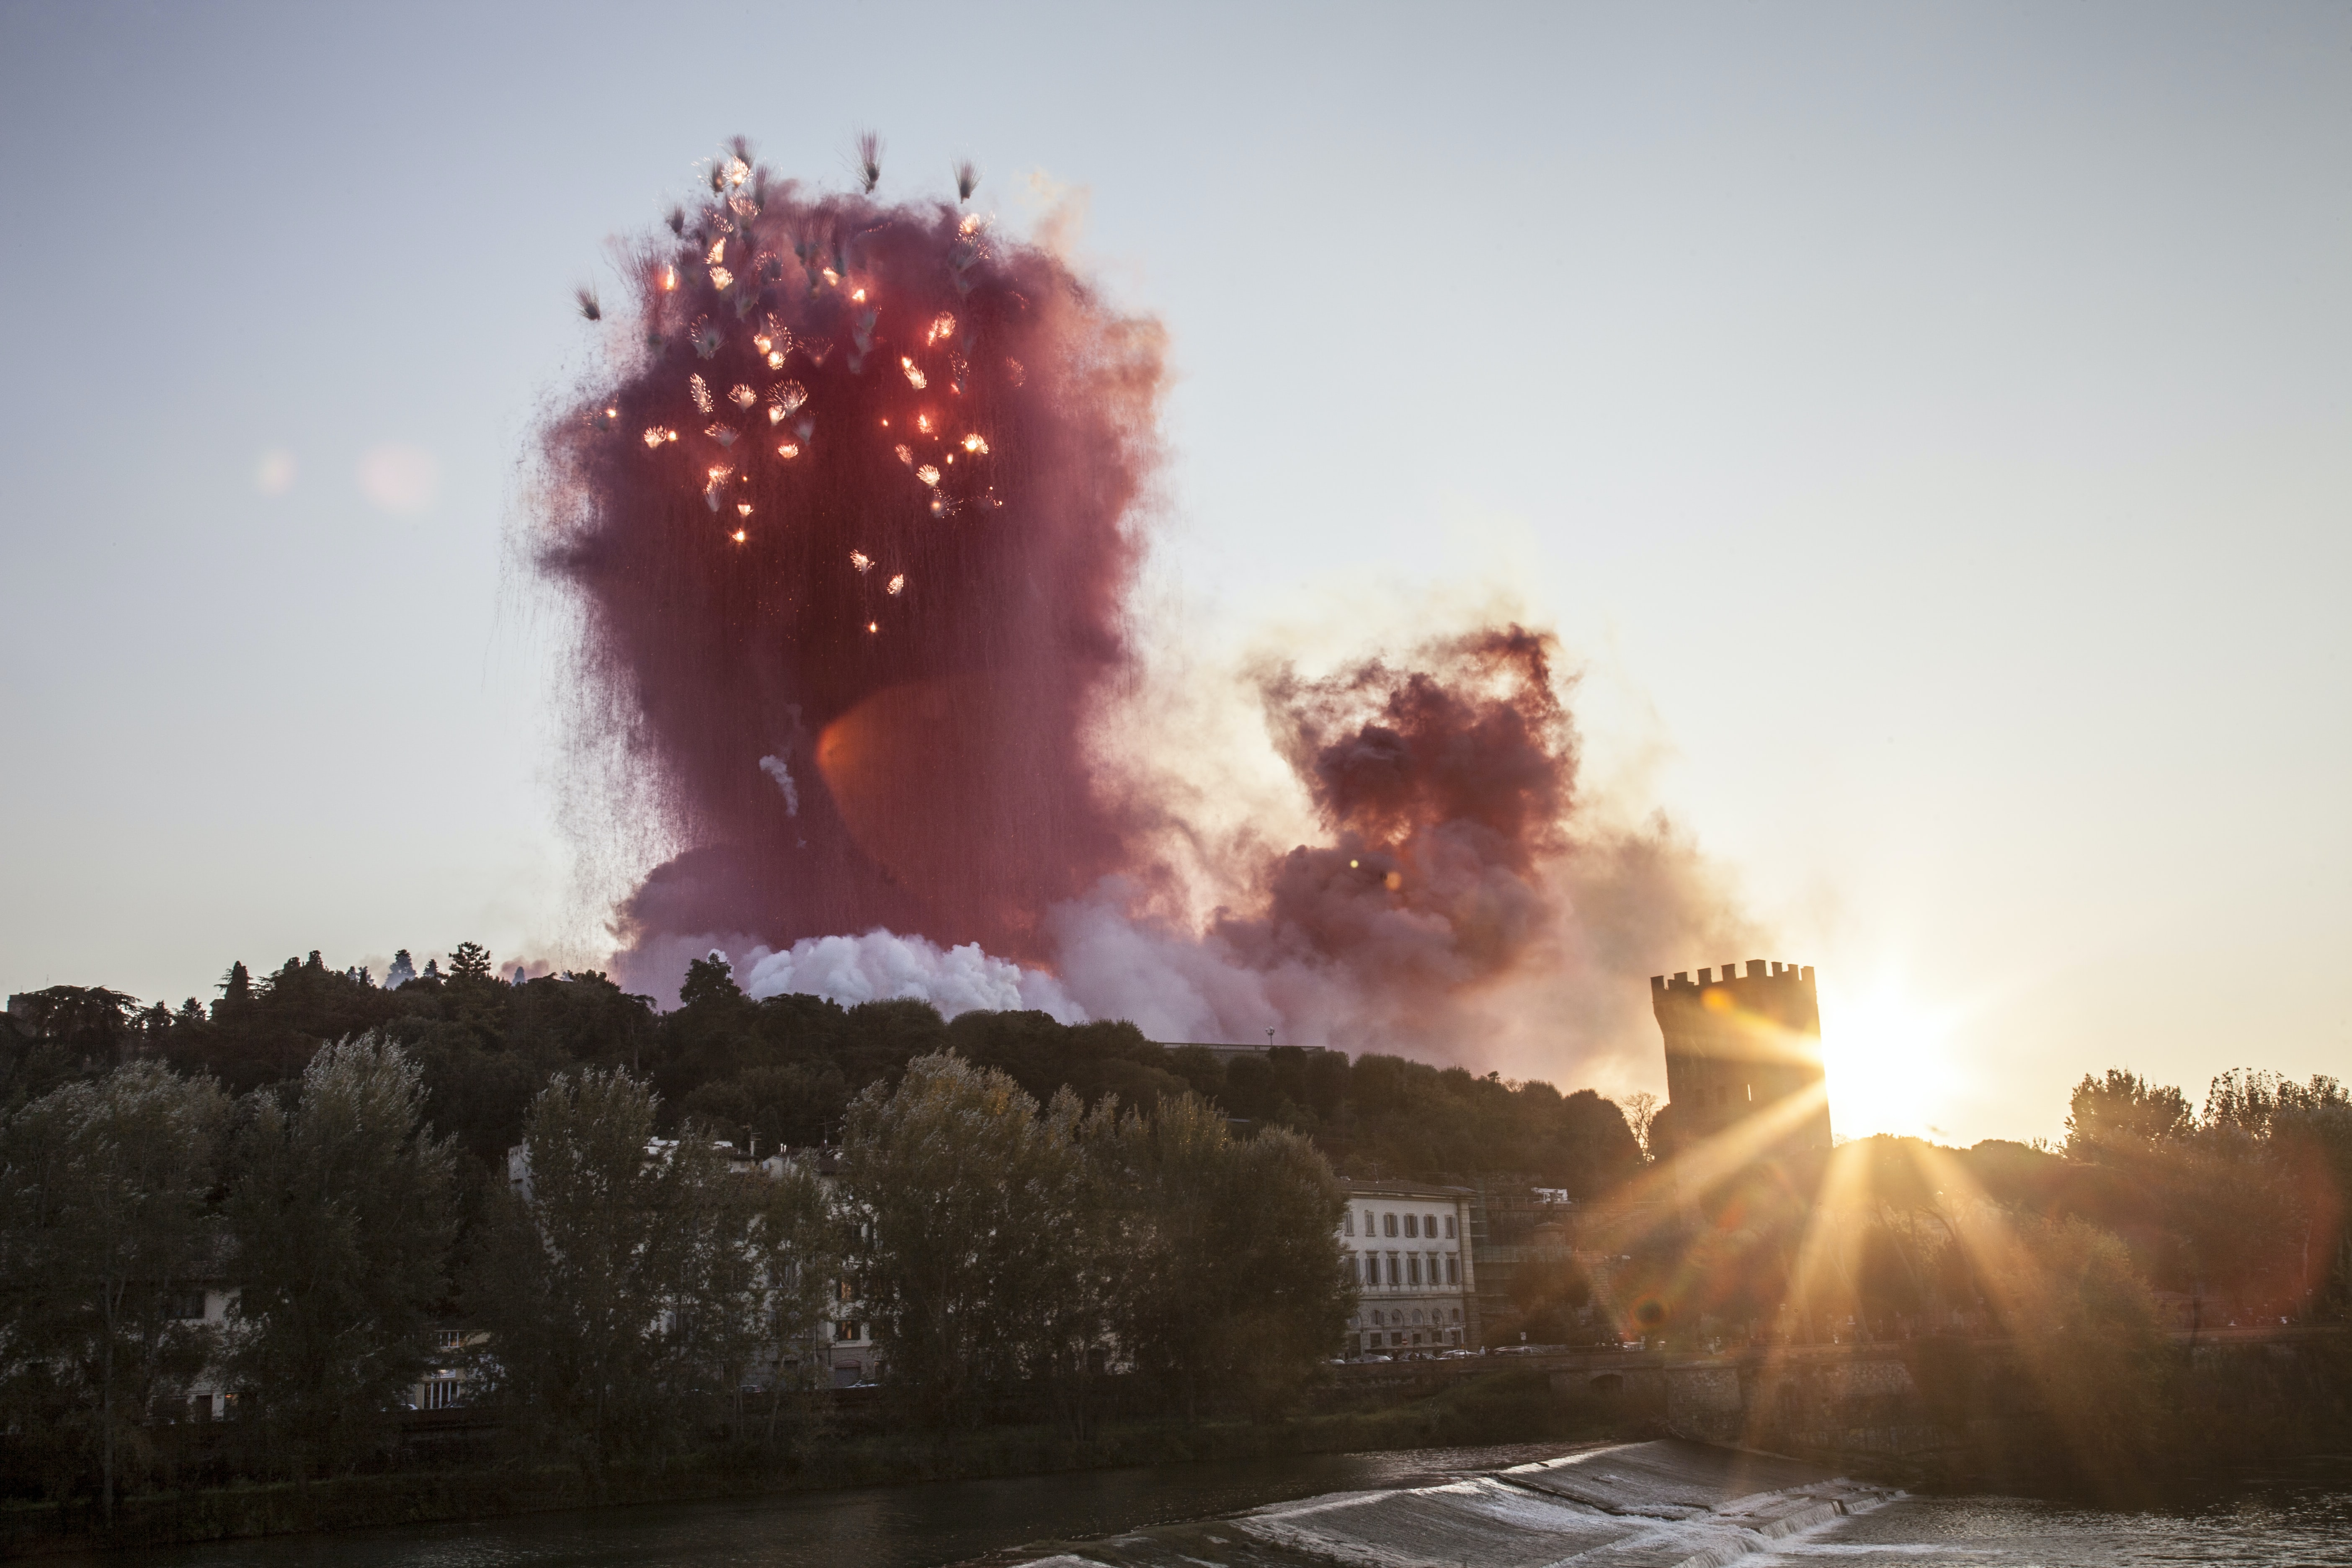 red explosion during daytime